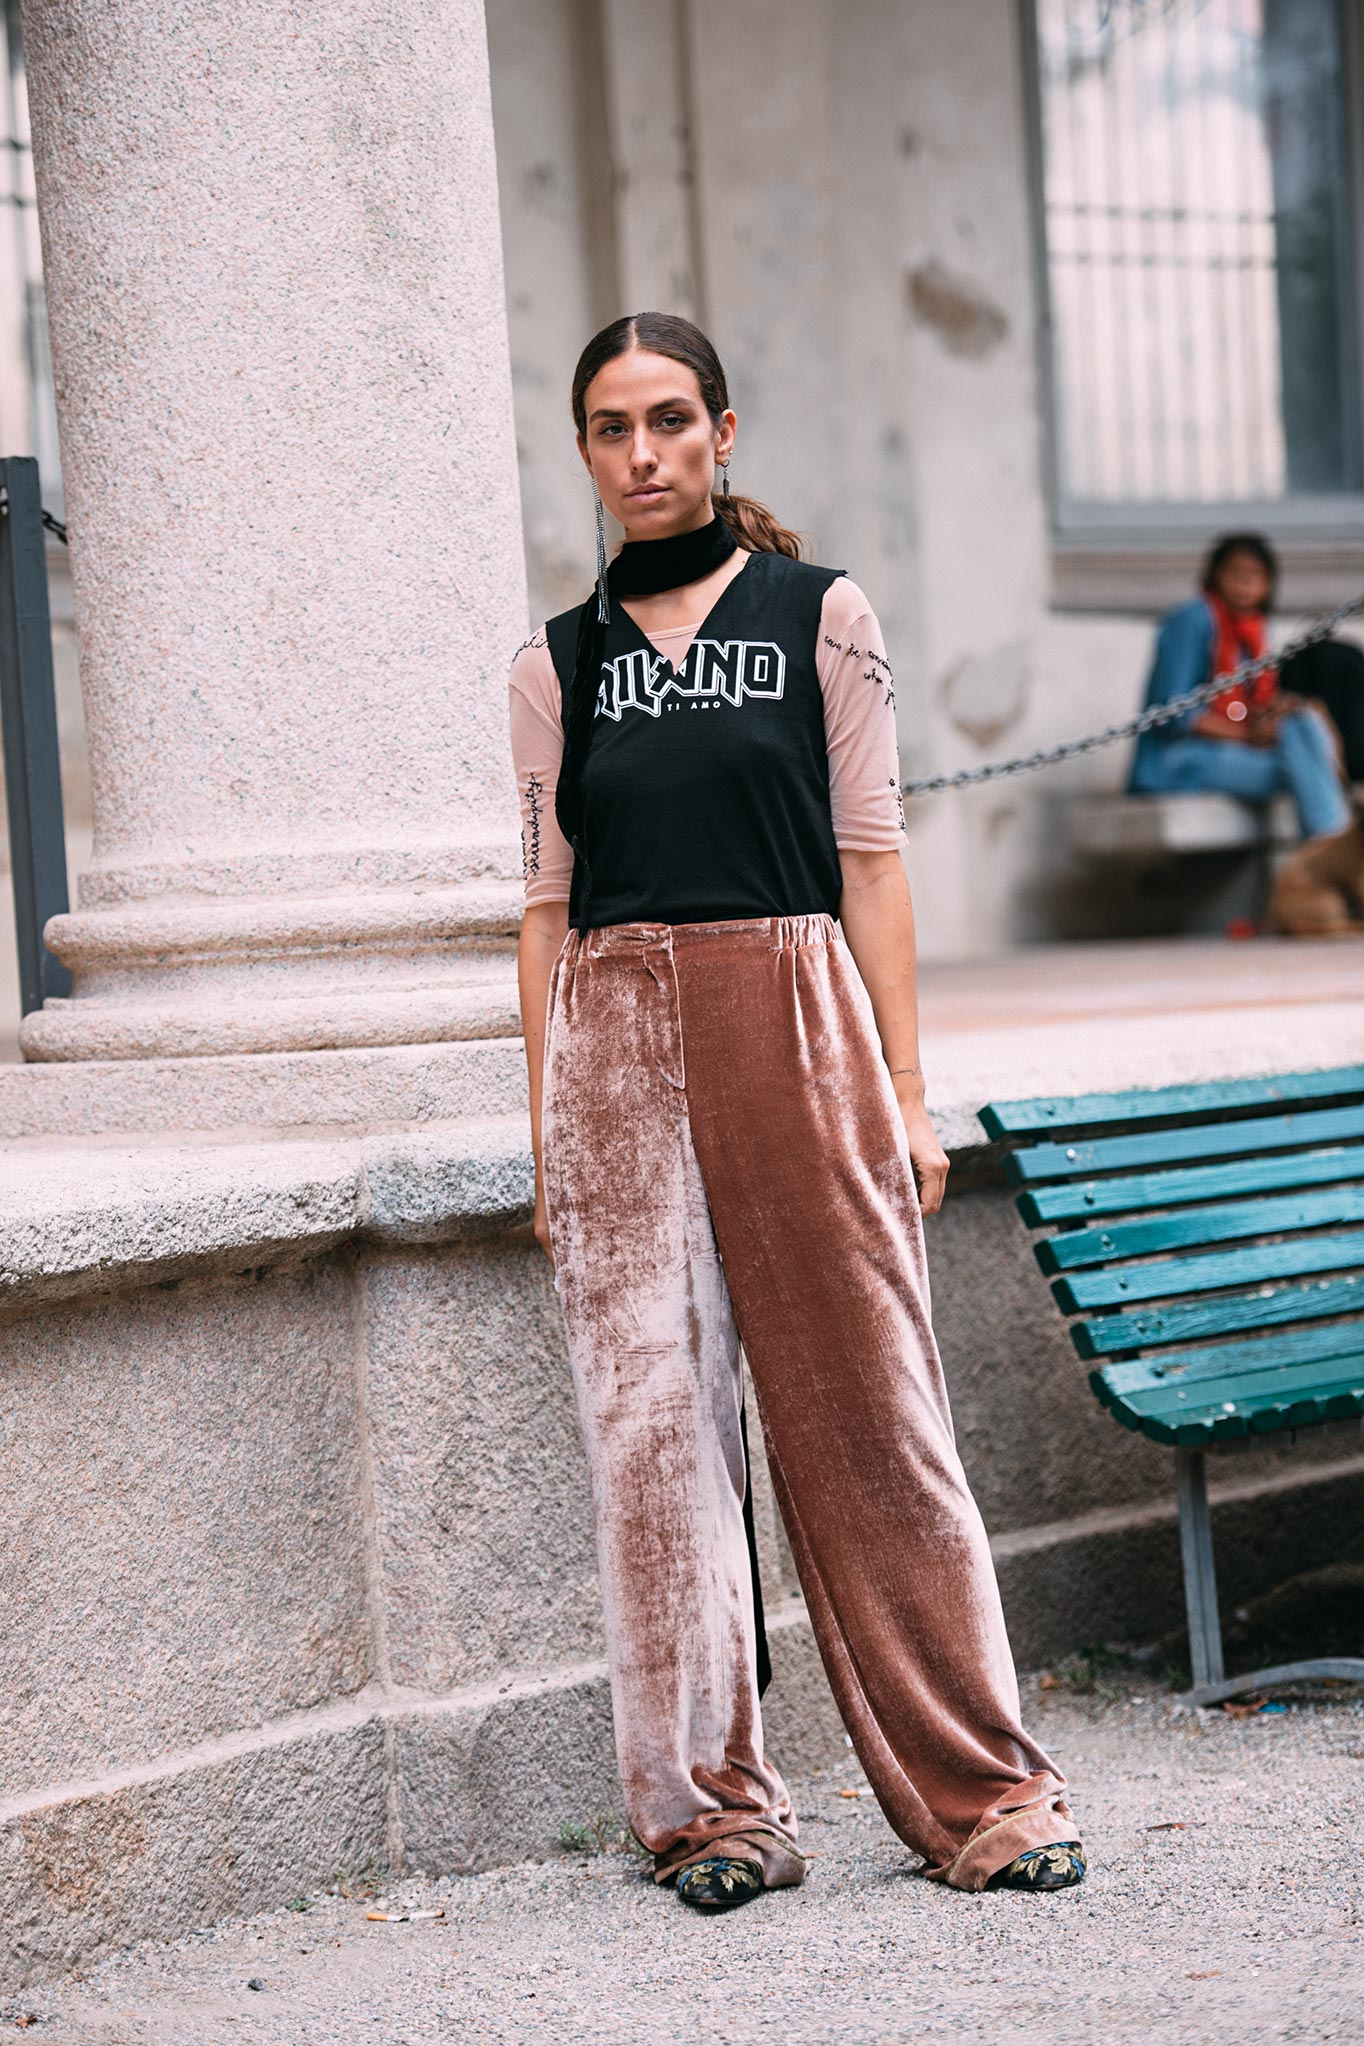 Erika Boldrin at Milan Fashion Week Spring/Summer 2017